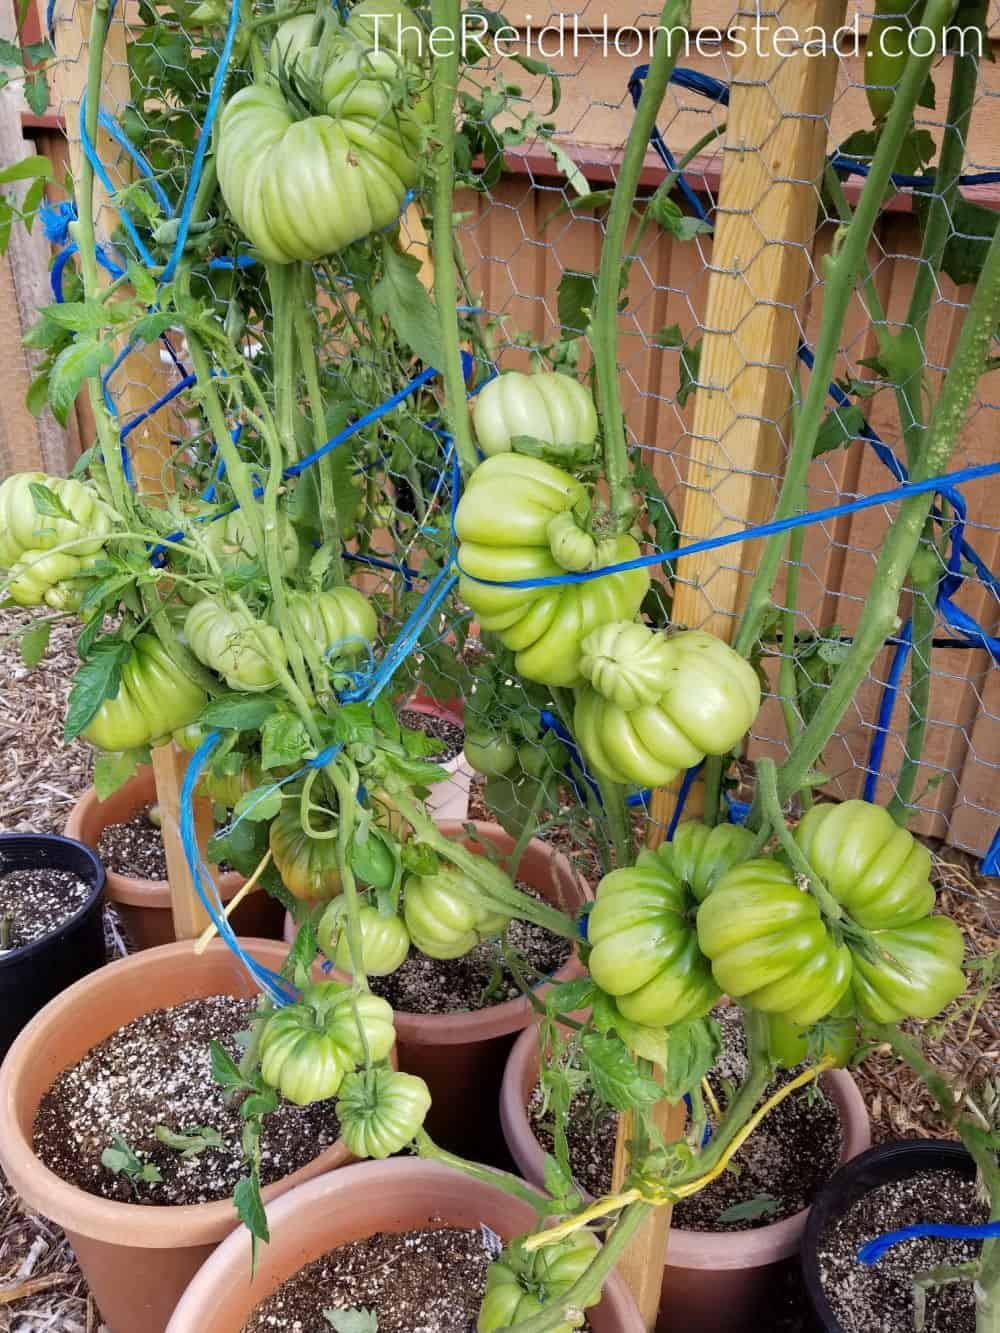 a Mushroom Basket Heirloom tomato plant loaded with tomatoes after being pruned throughout the season.